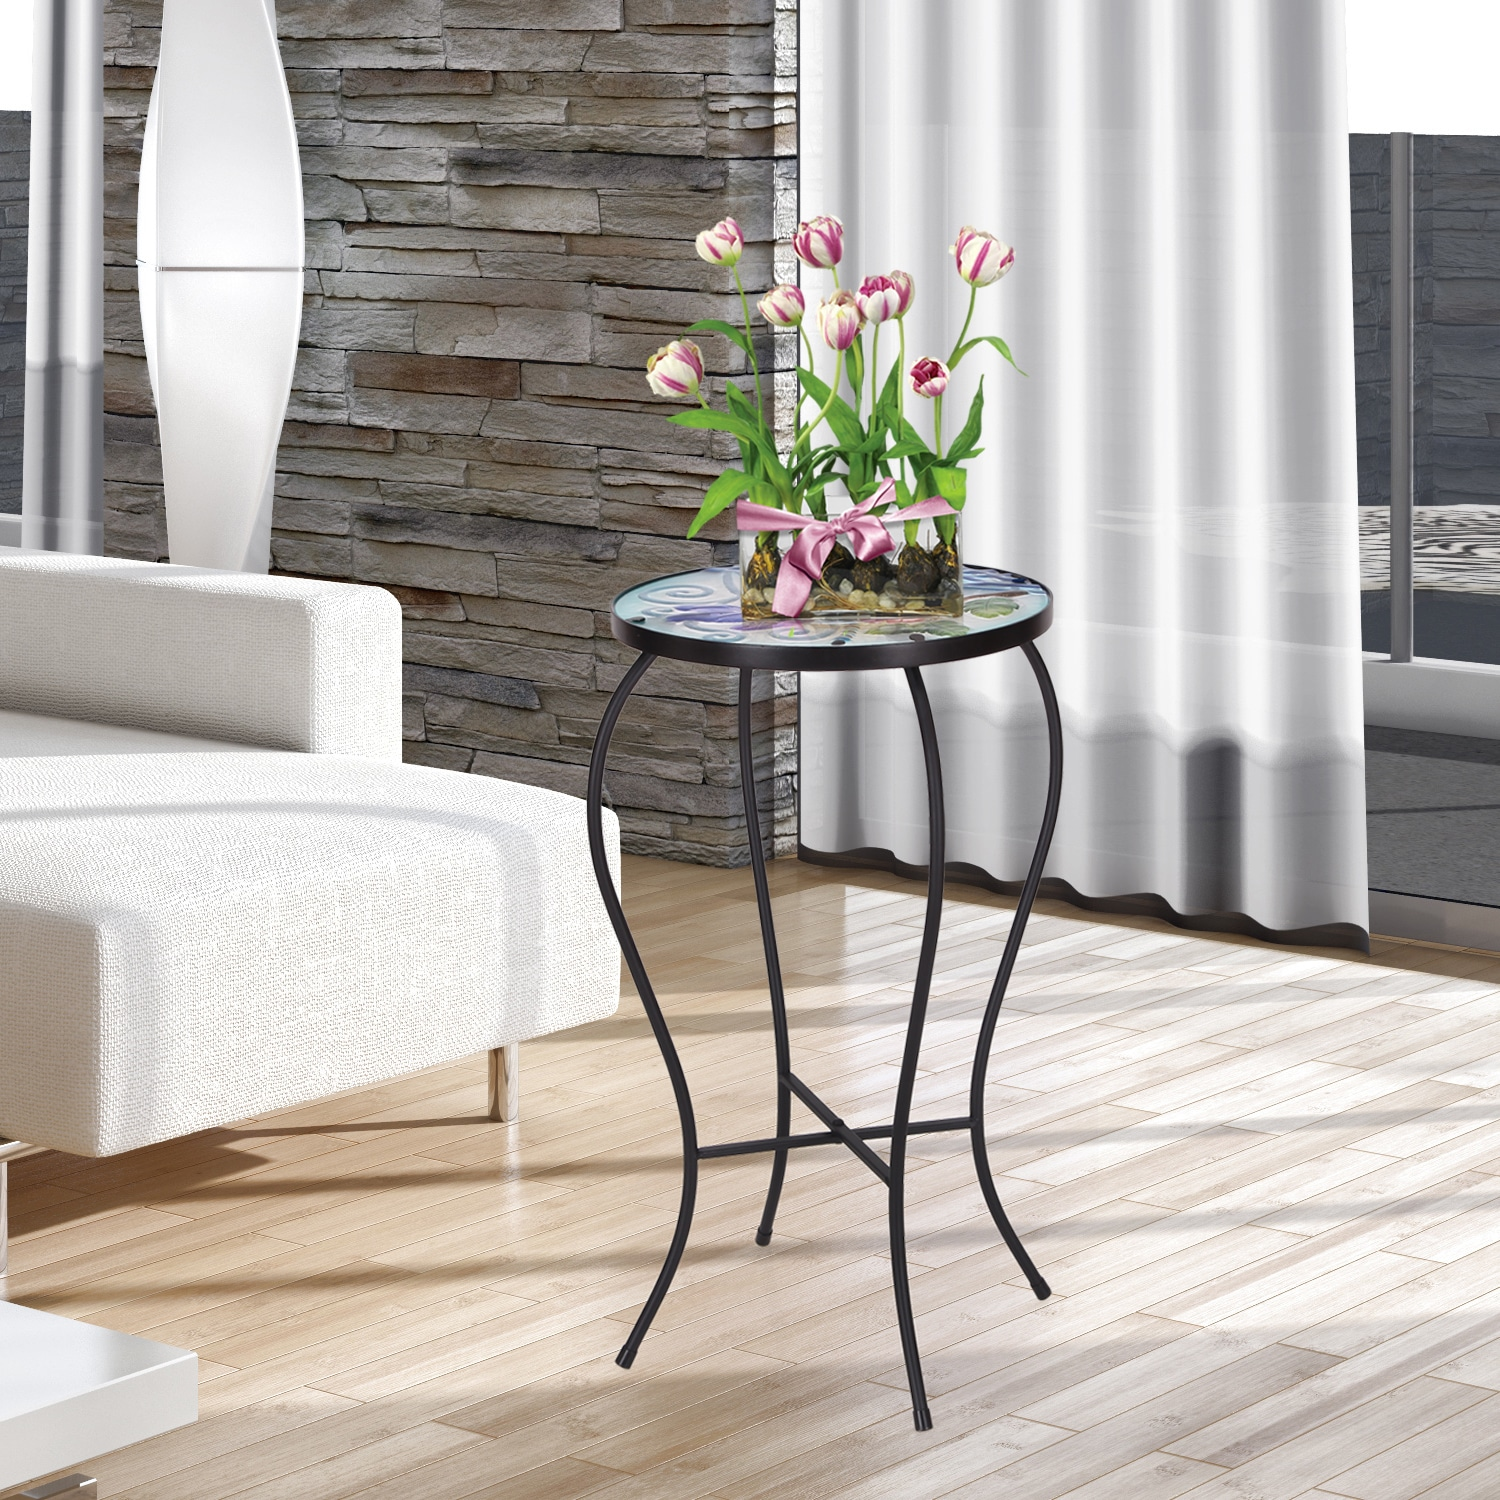 Adeco Contemporary Round Accent Table Plant Stand (Foldab...